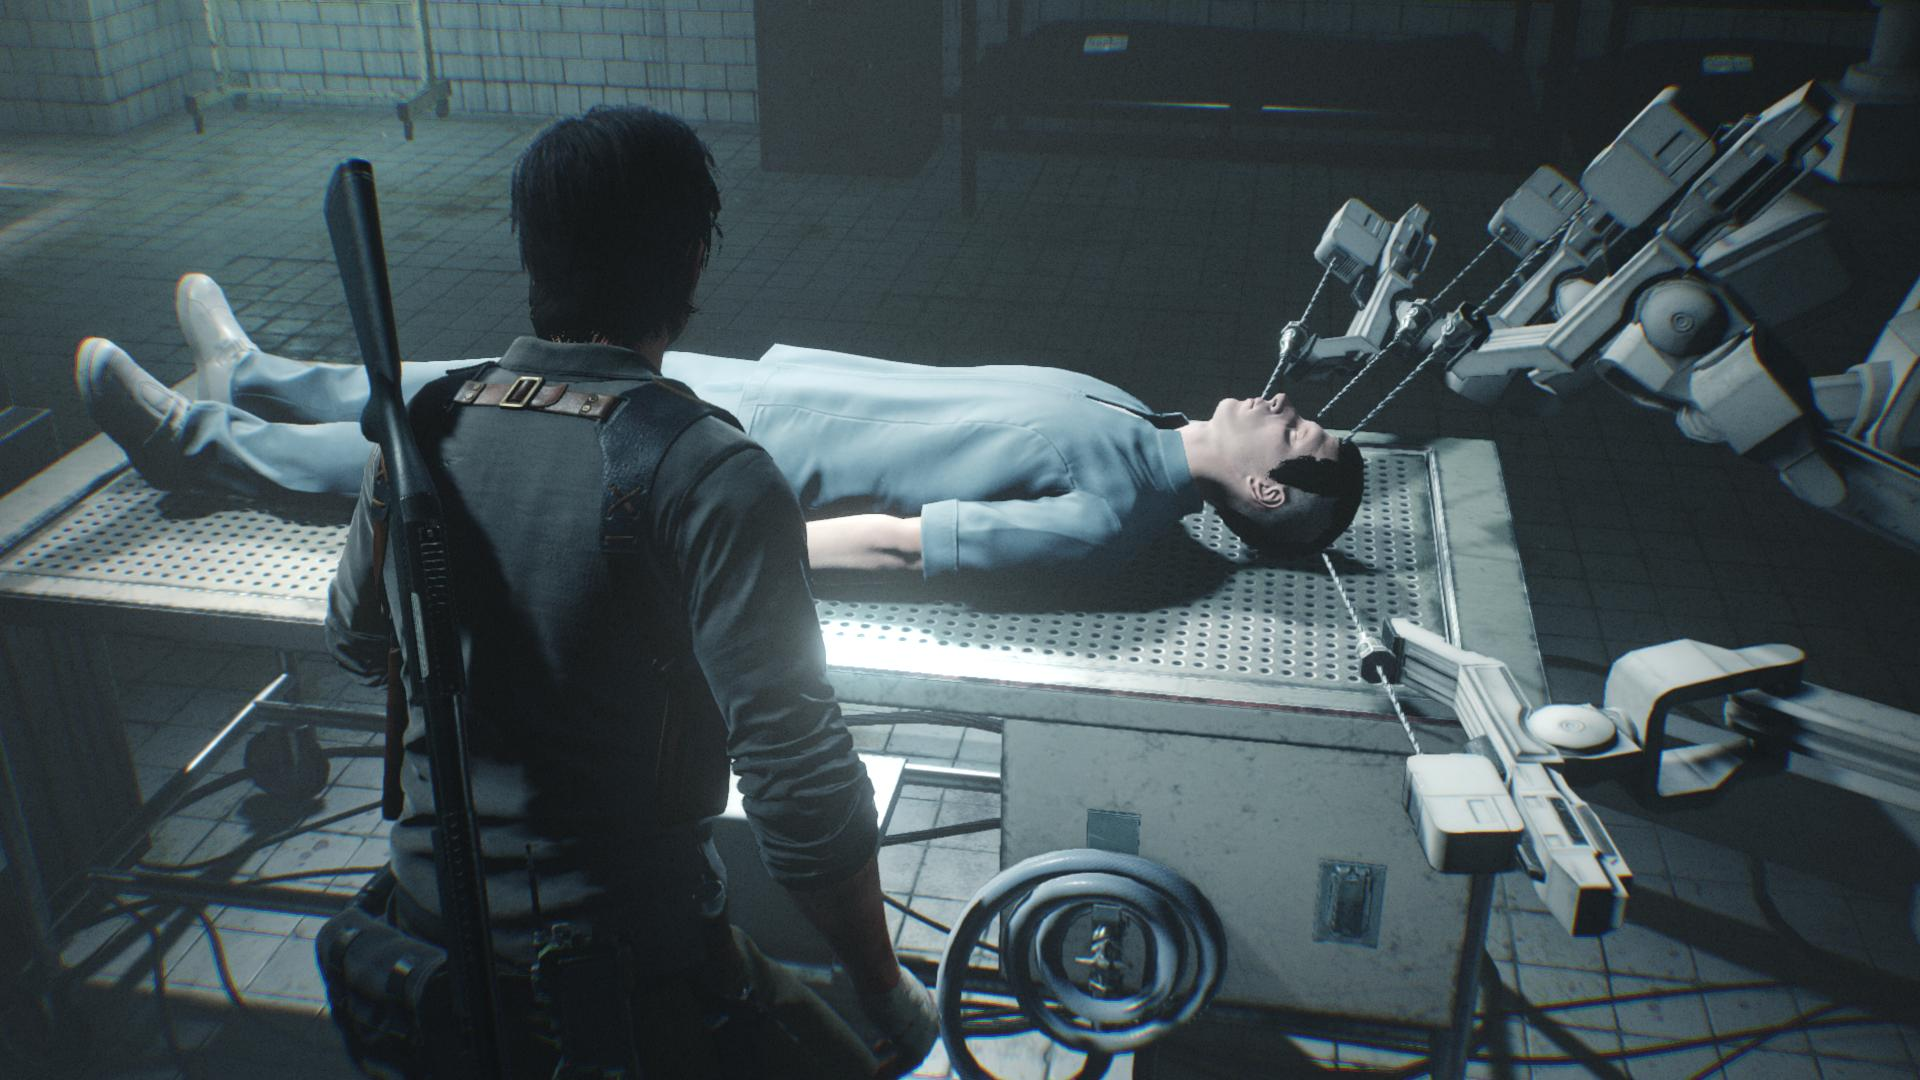 000221.Jpg - Evil Within 2, the